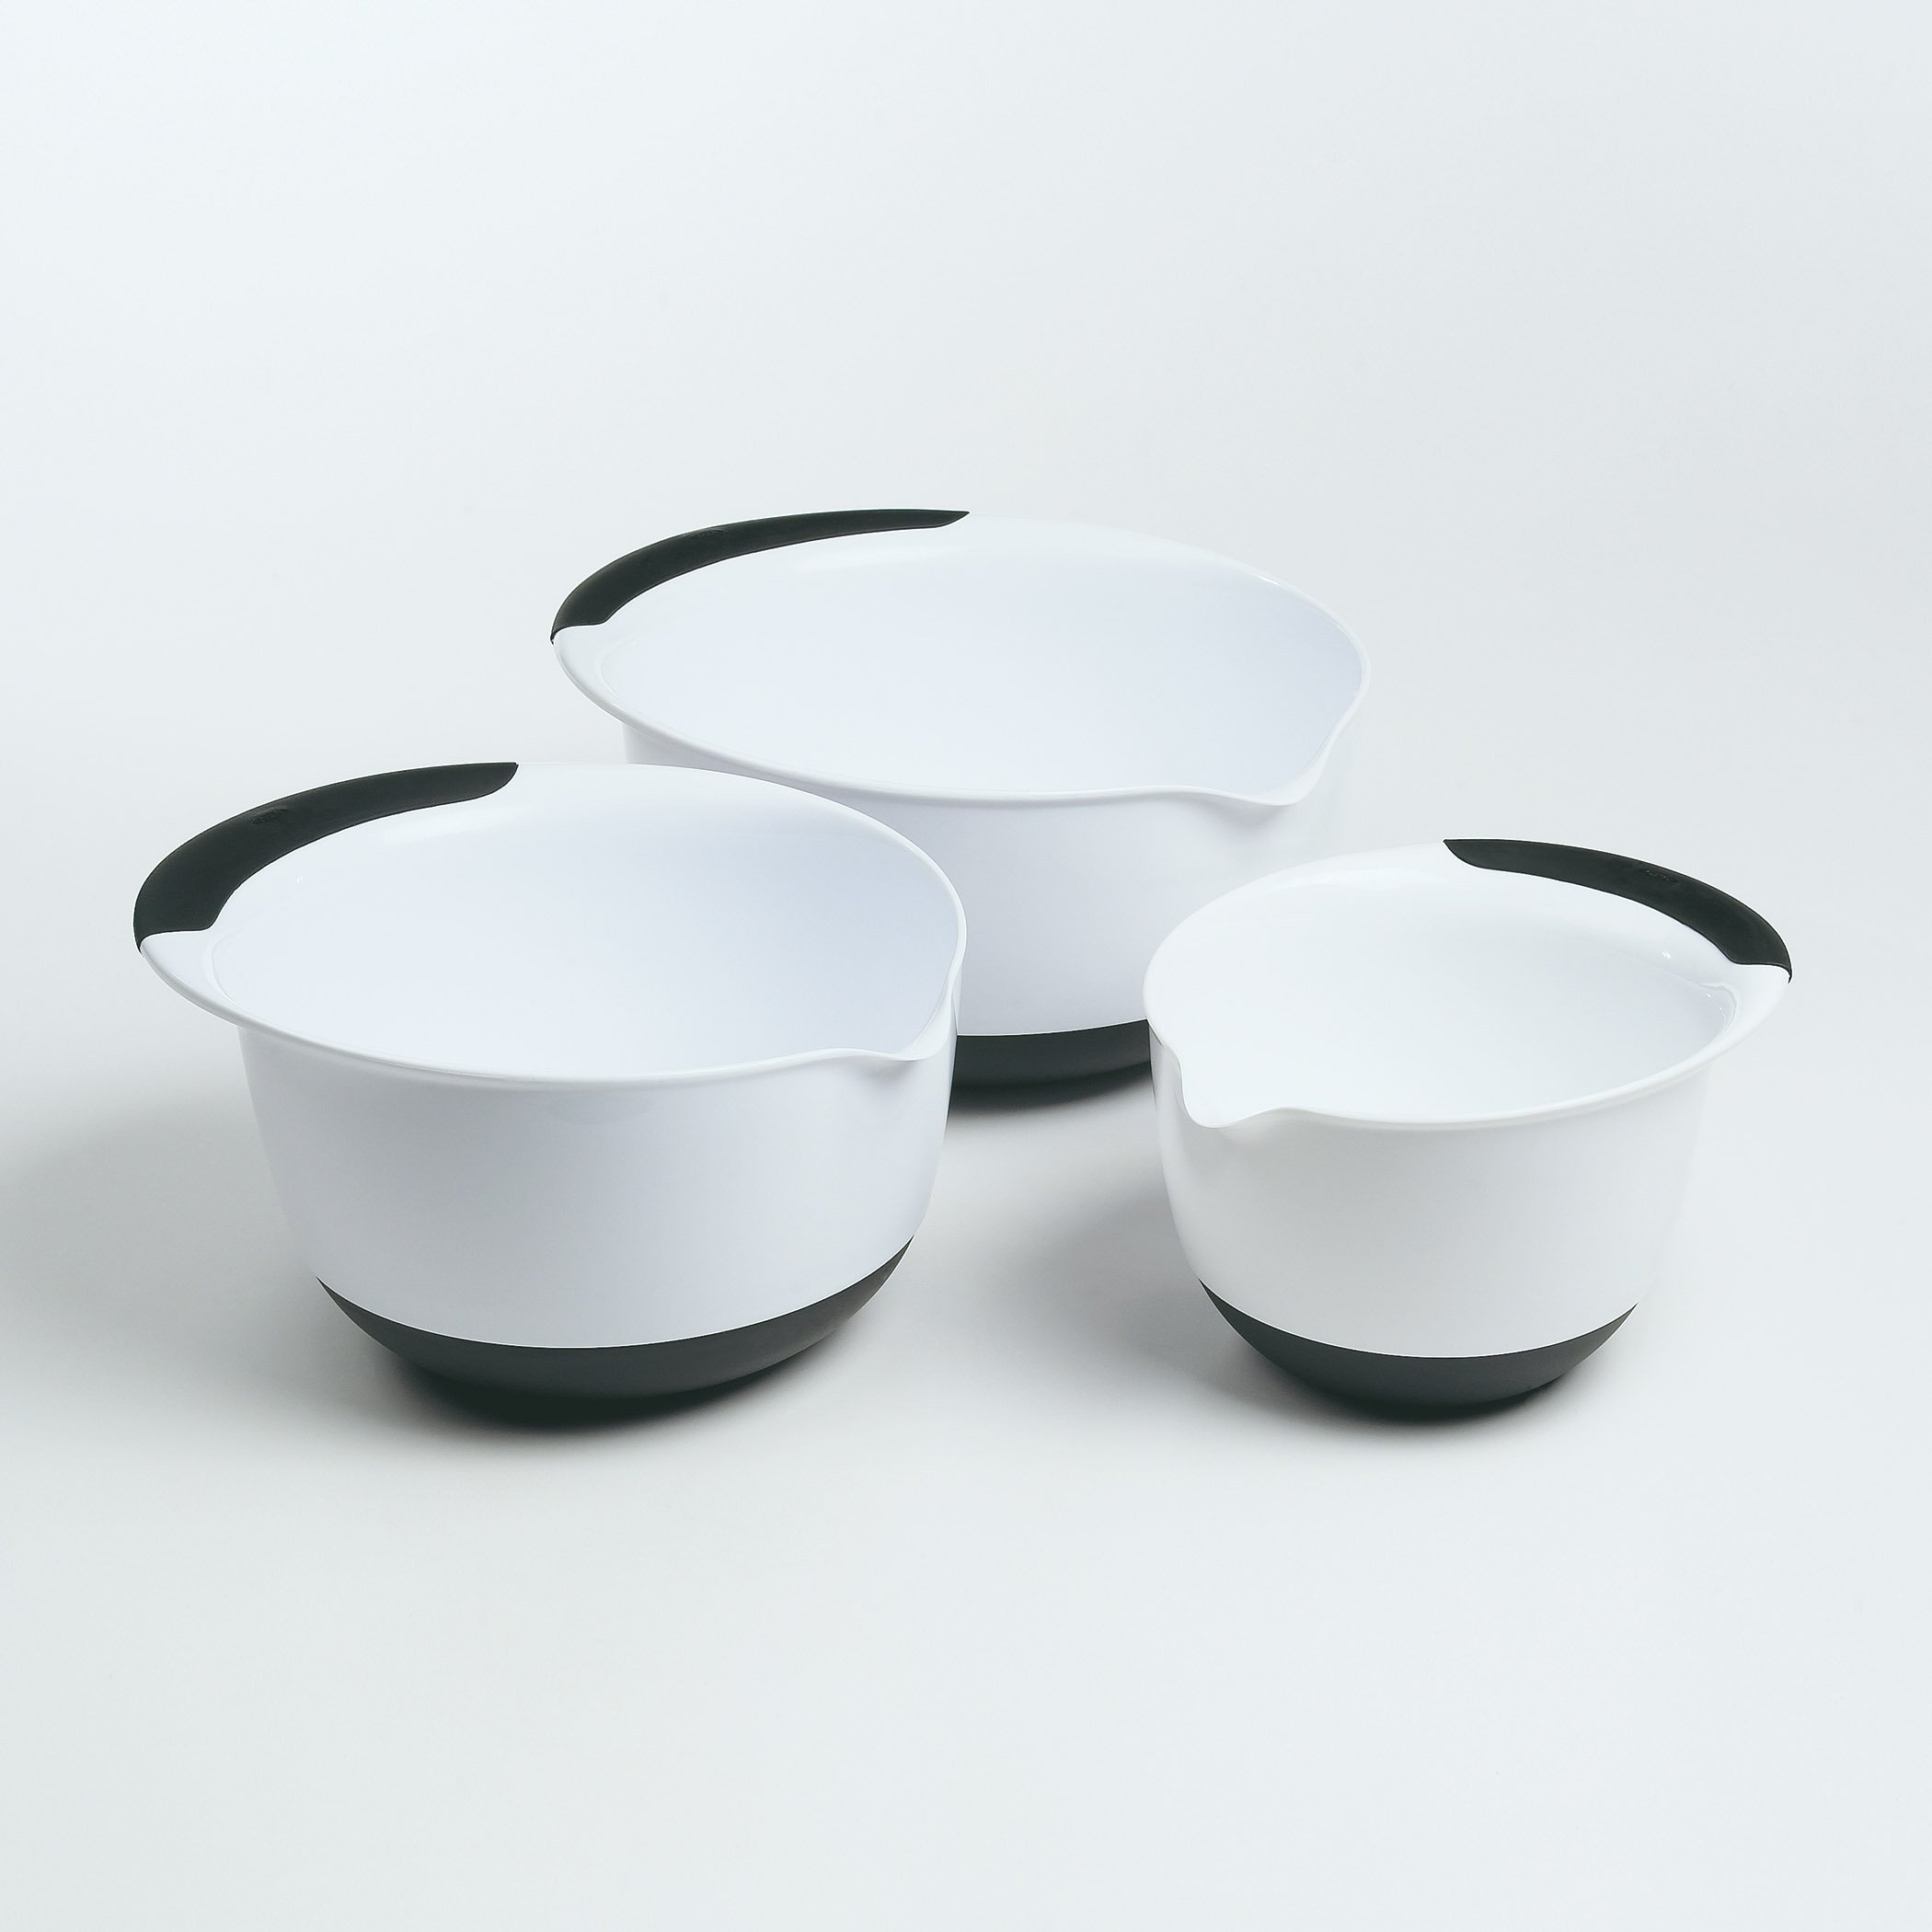 OXO Good Grips Mixing Bowl Set with Black Handles, 3-Piece by OXO (Image #7)